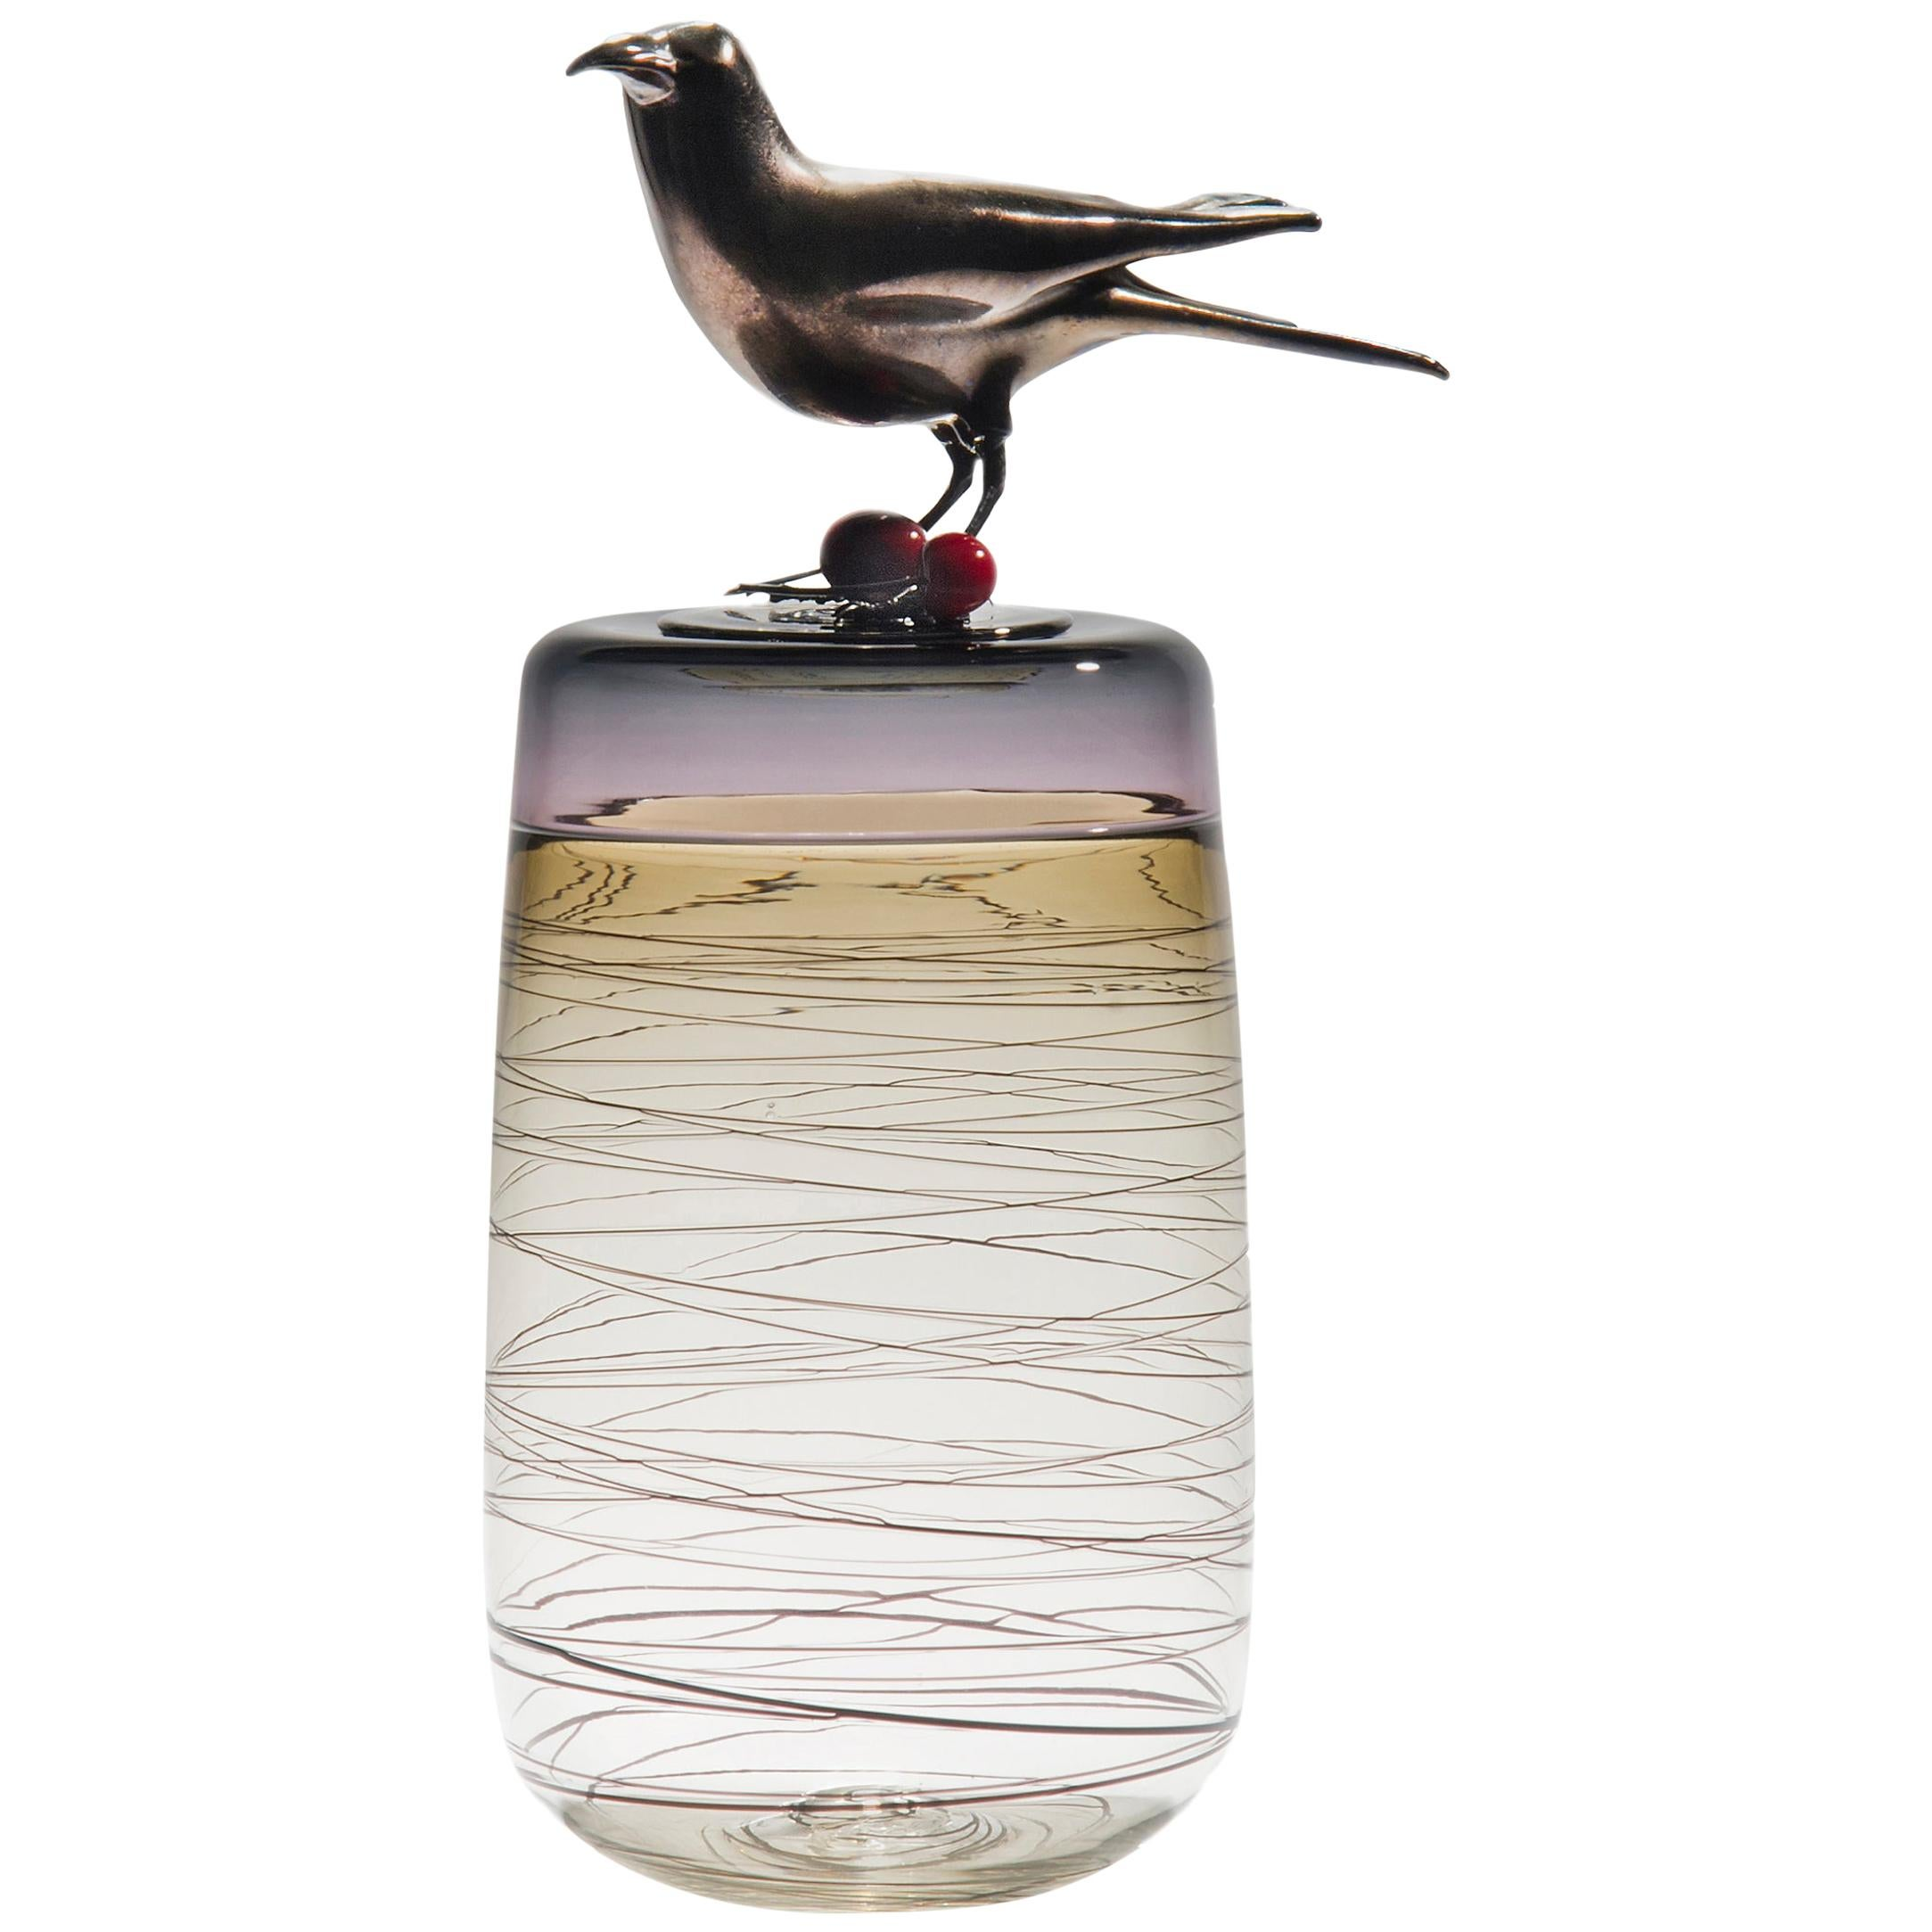 Red Cherries, a Unique Glass Sculptural Vase with Black Crow by Julie Johnson